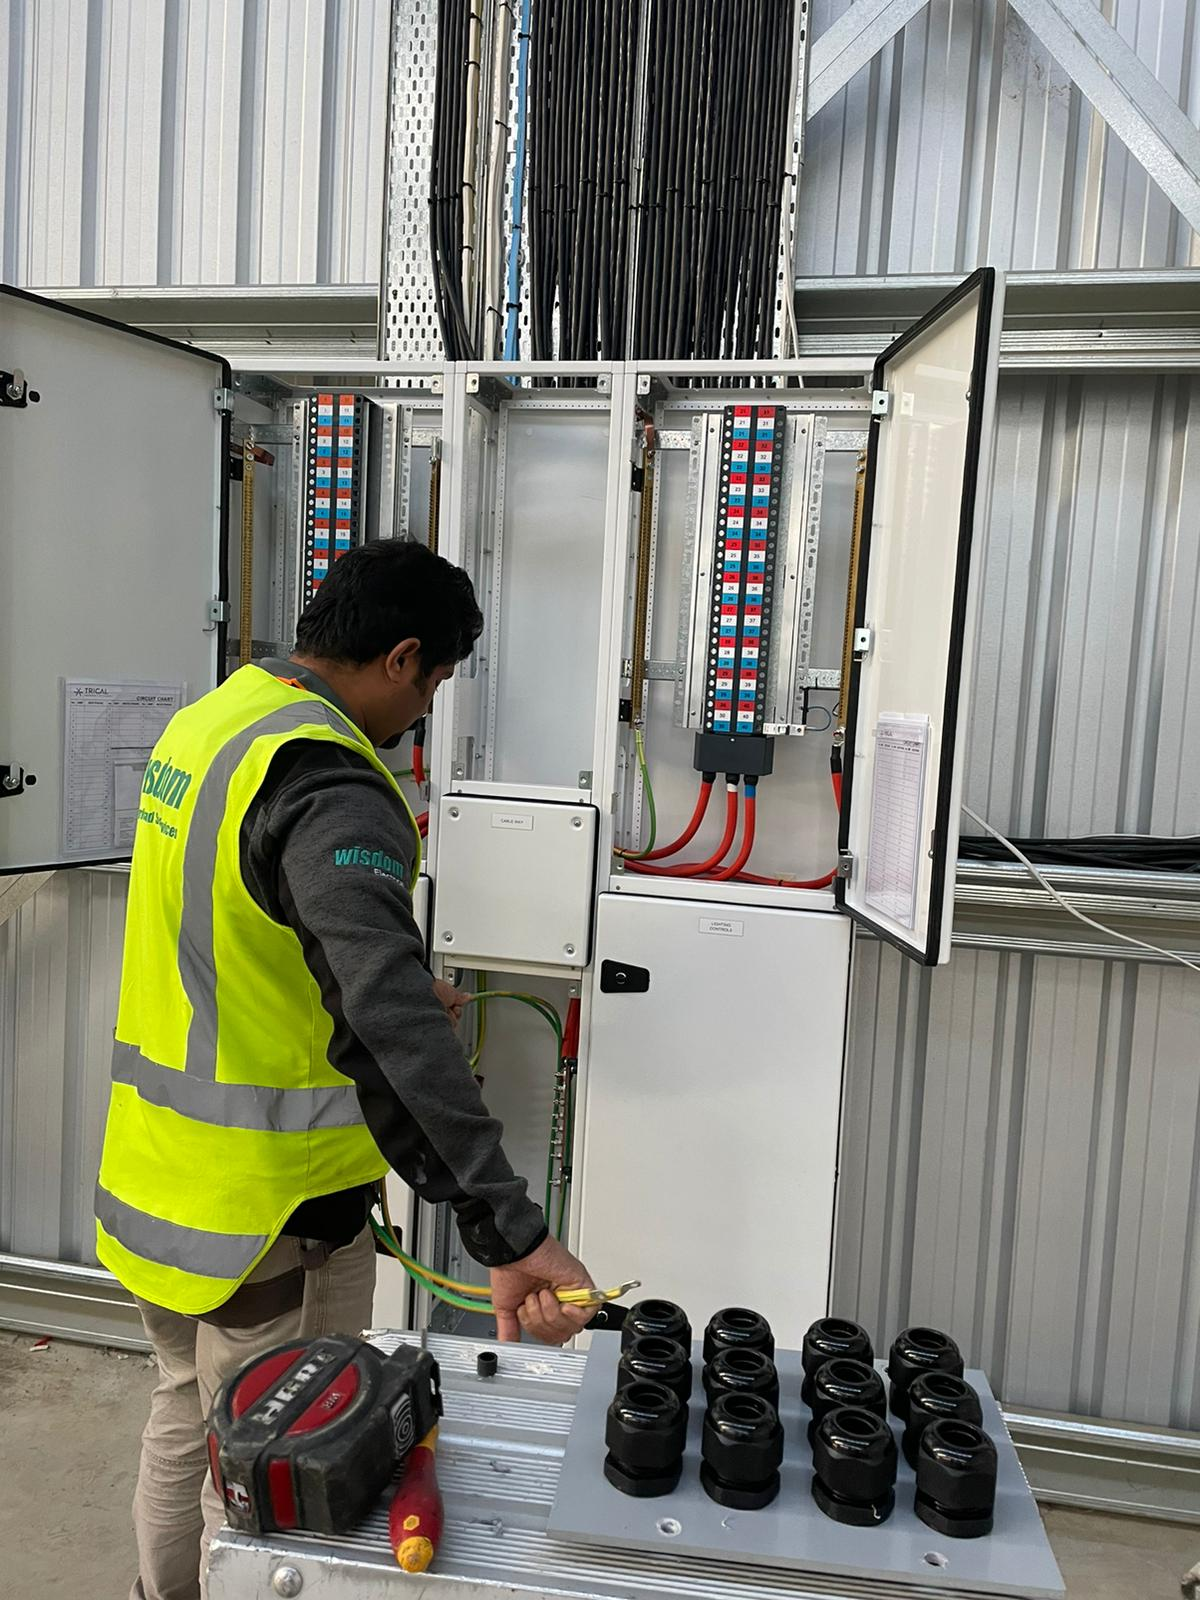 Electricians working on an industrial power distribution center